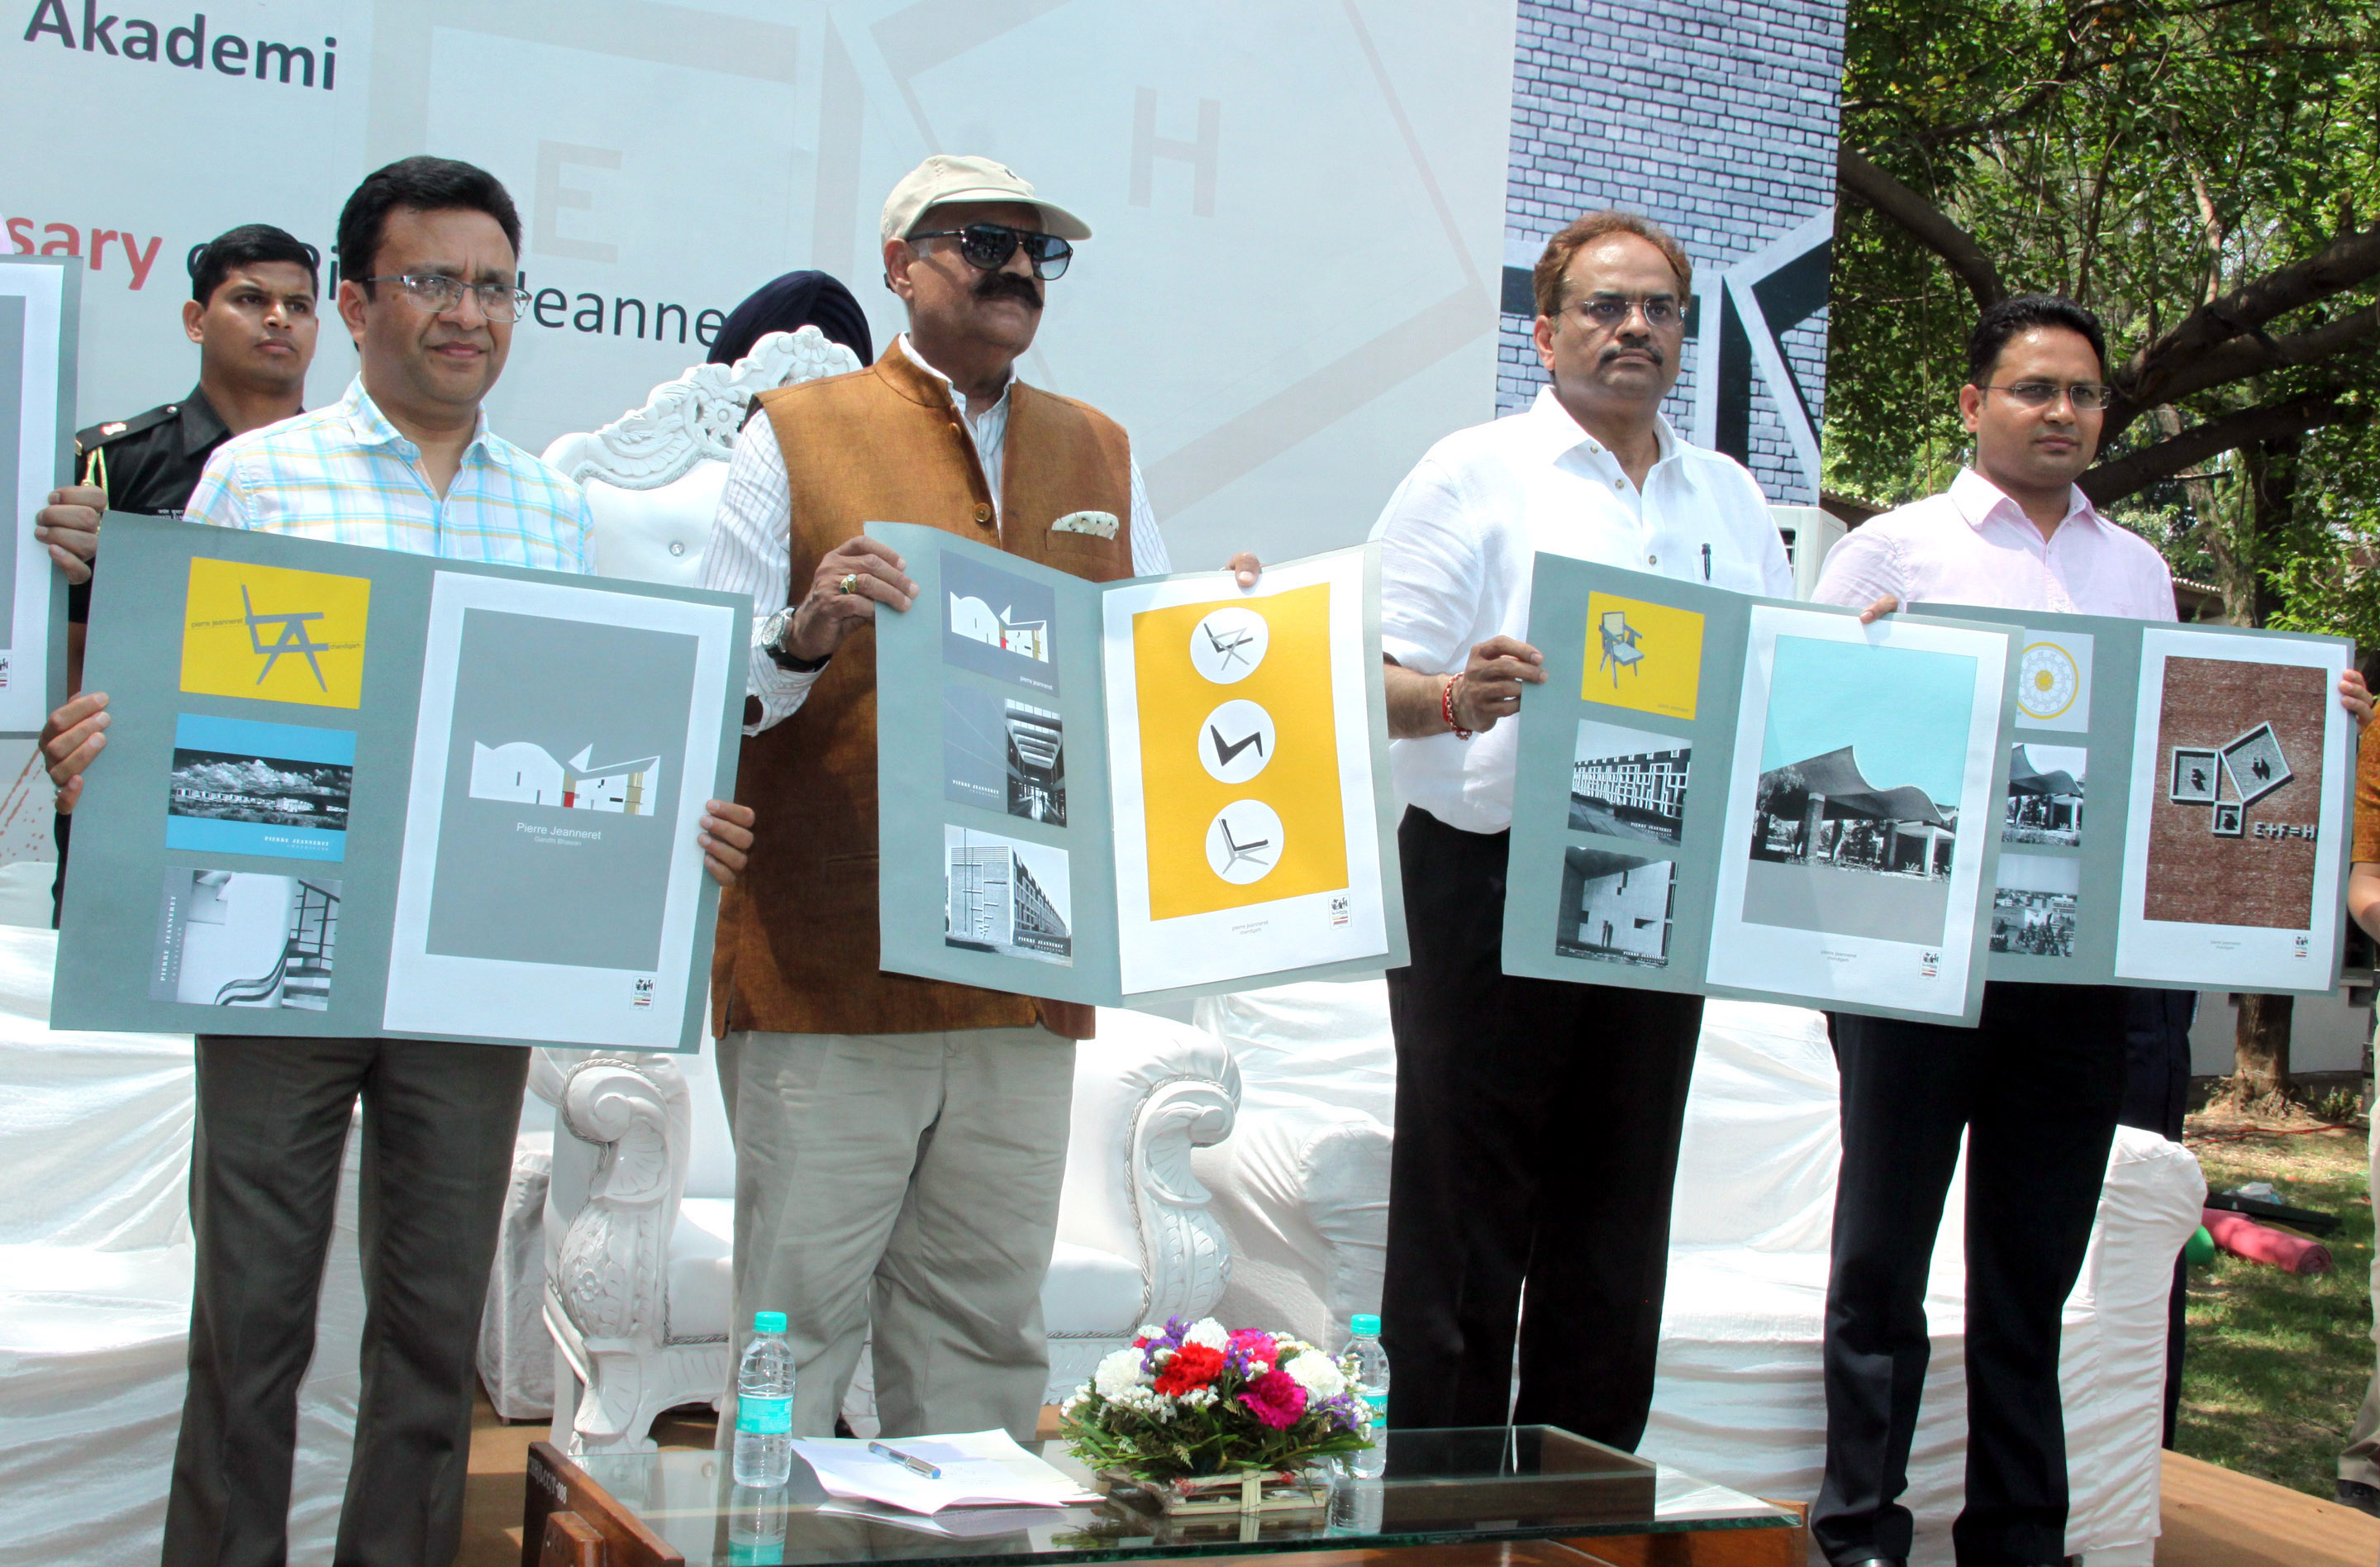 """The Governor of Punjab and Administrator, UT, Chandigarh, Shri V.P. Singh Badnore, the Adviser to the Administrator, UT, Chandigarh, Shri Parimal Rai alongwith senior officers releasing """"Souvenir based on the works of Jeanneret"""" on the occasion of 122nd Birth Anniversary of Pierre Jeanneret at Le Corbusier Centre, Sector-19, Chandigarh on Tuesday, April 17, 2018."""